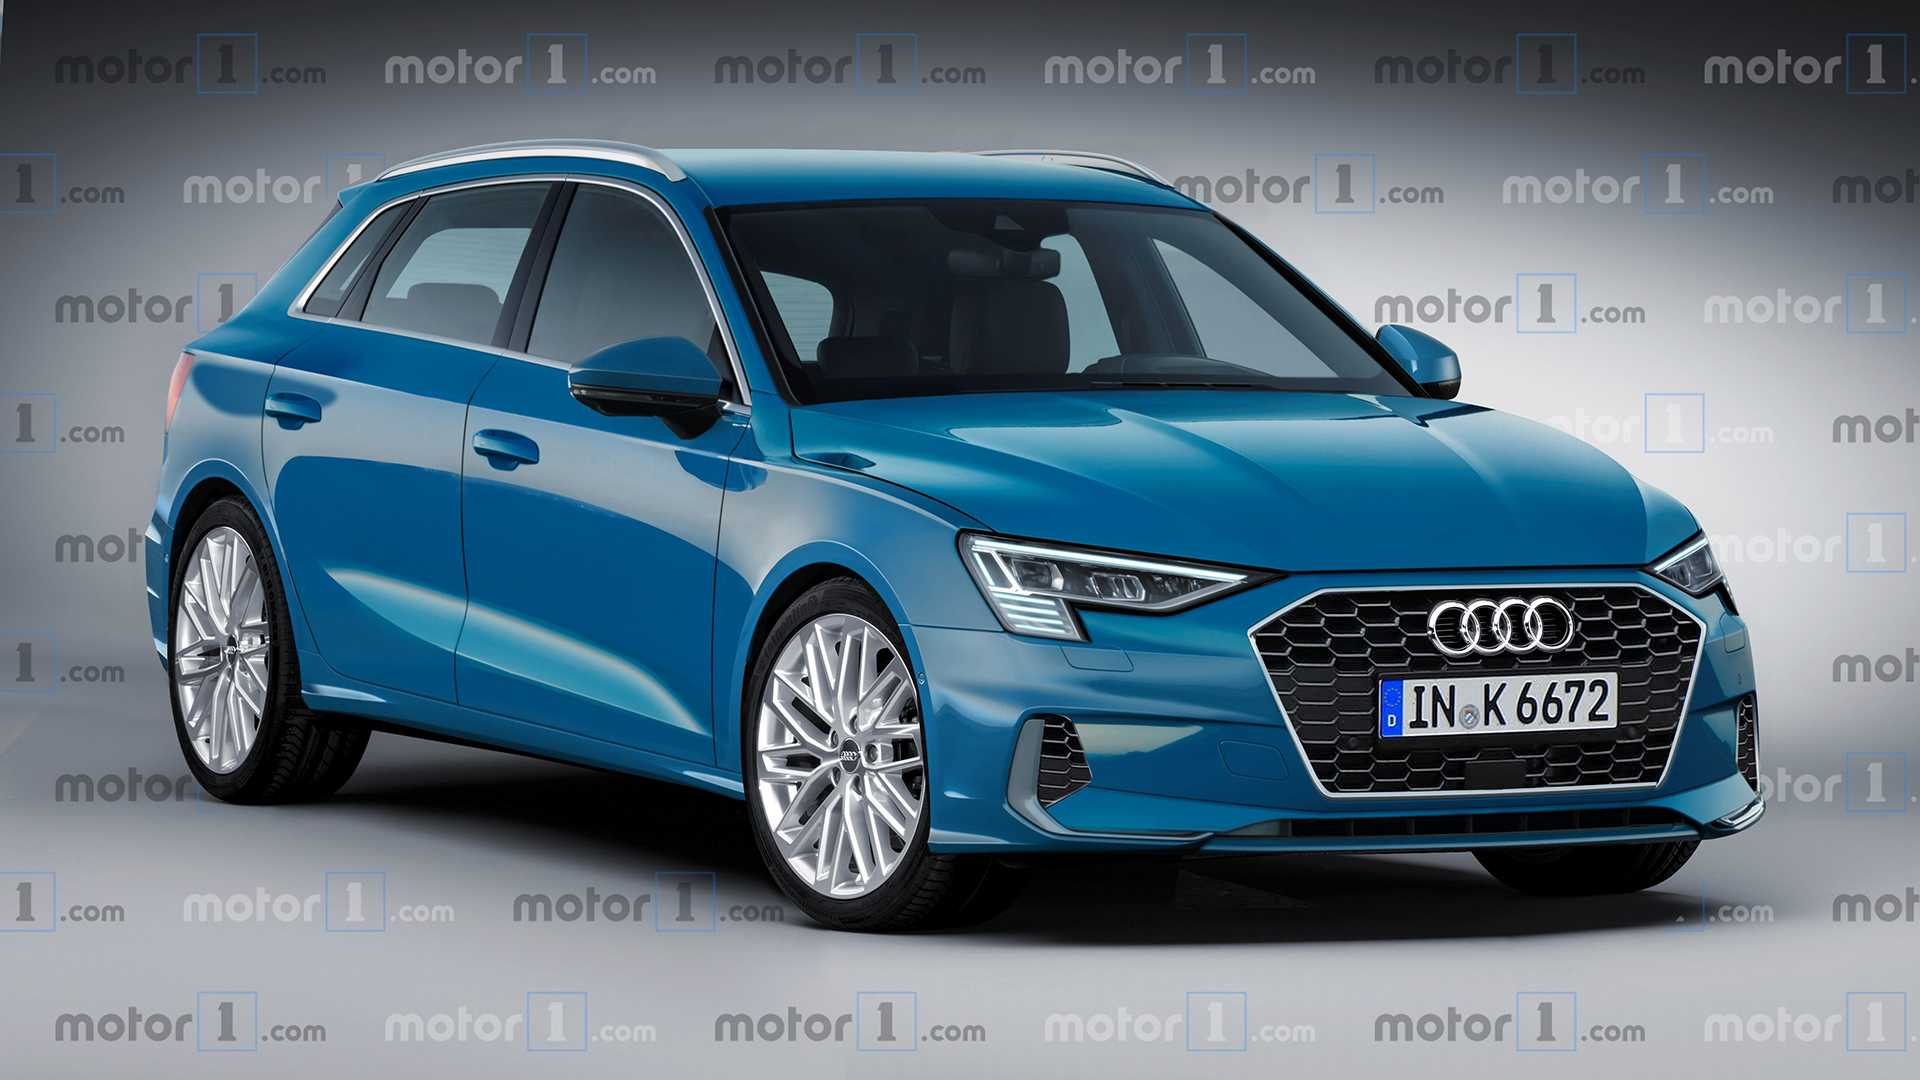 44 All New Audi A3 2020 Release Date Research New for Audi A3 2020 Release Date